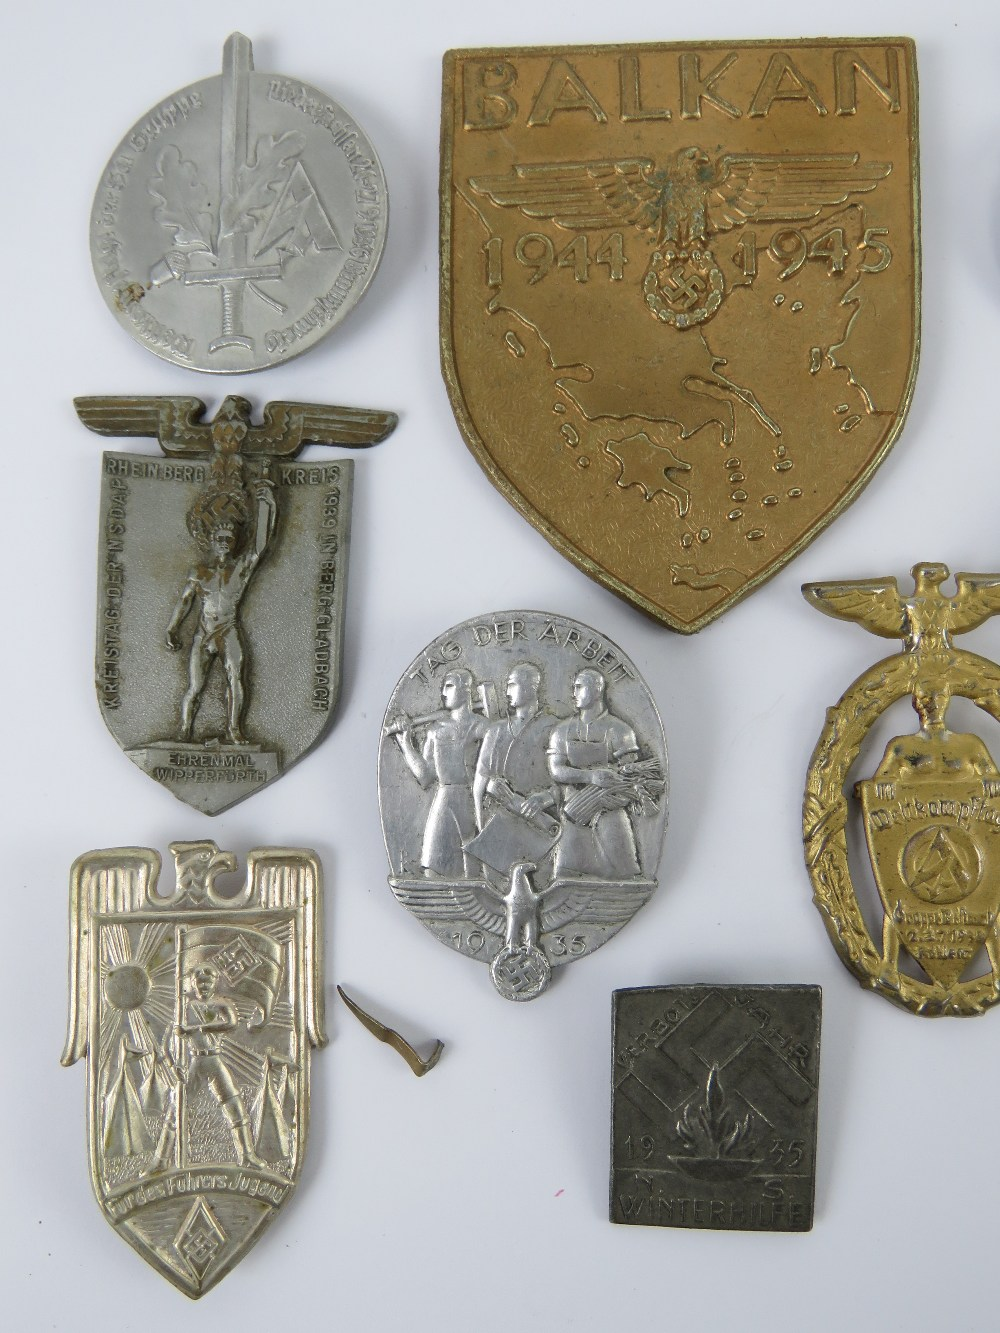 A quantity of assorted WWII German day badges including; Balkan 1944 - 1945, Seefahrt 1st Not, - Image 2 of 6